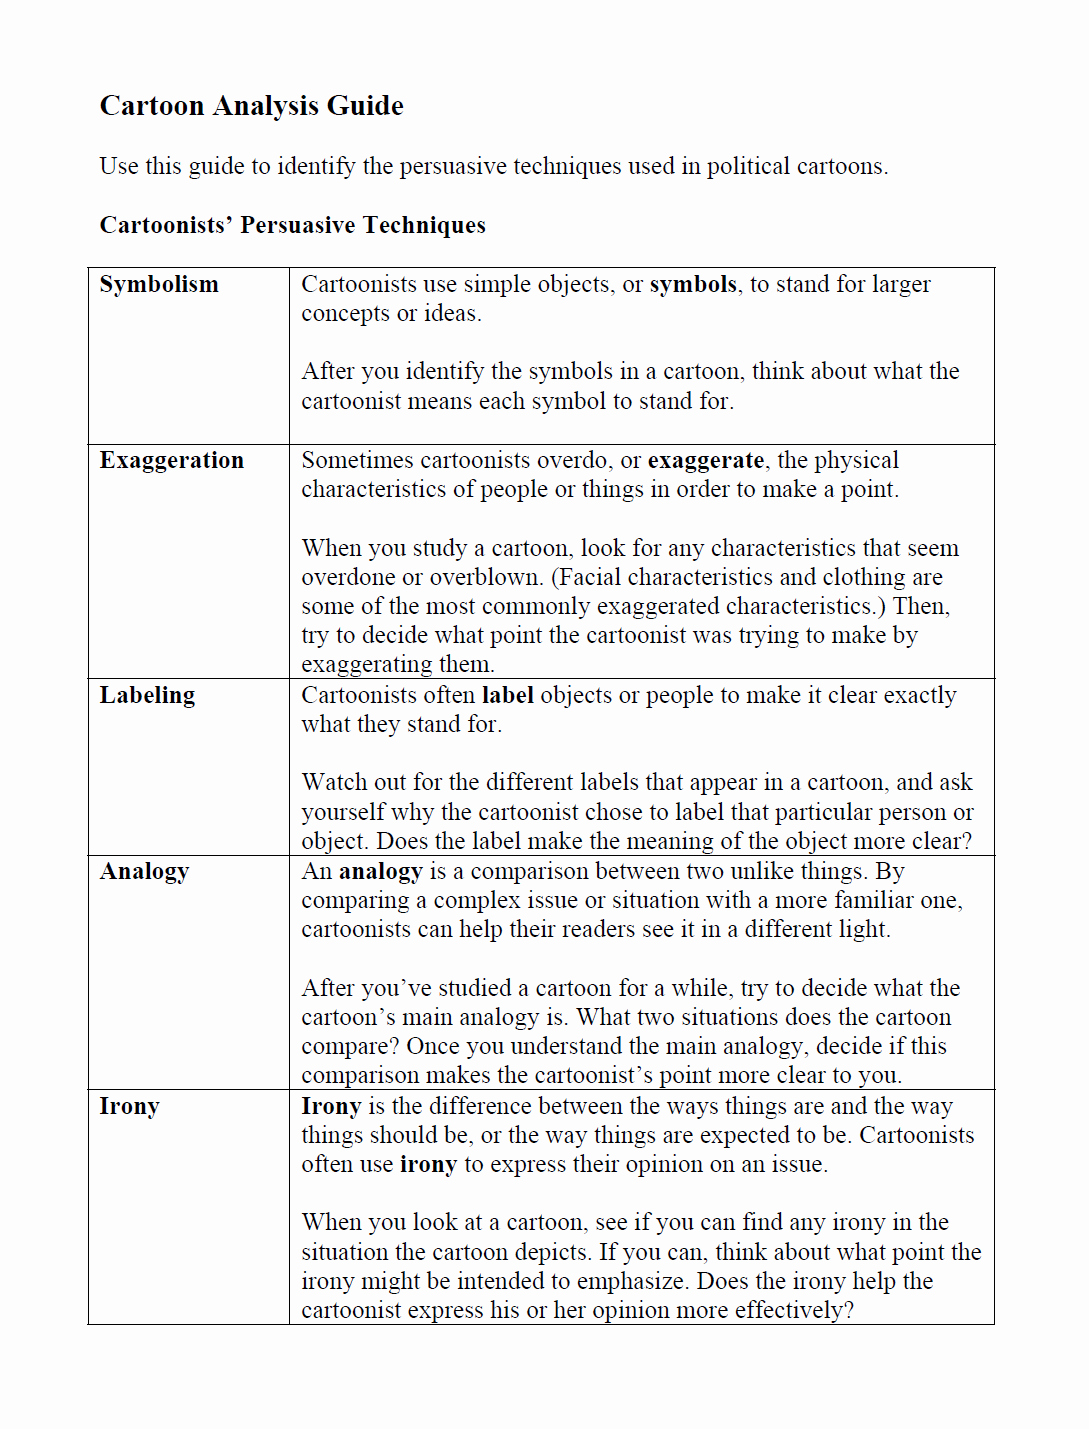 Political Cartoon Analysis Worksheet Best Of Analyze Political Cartoons Worksheet